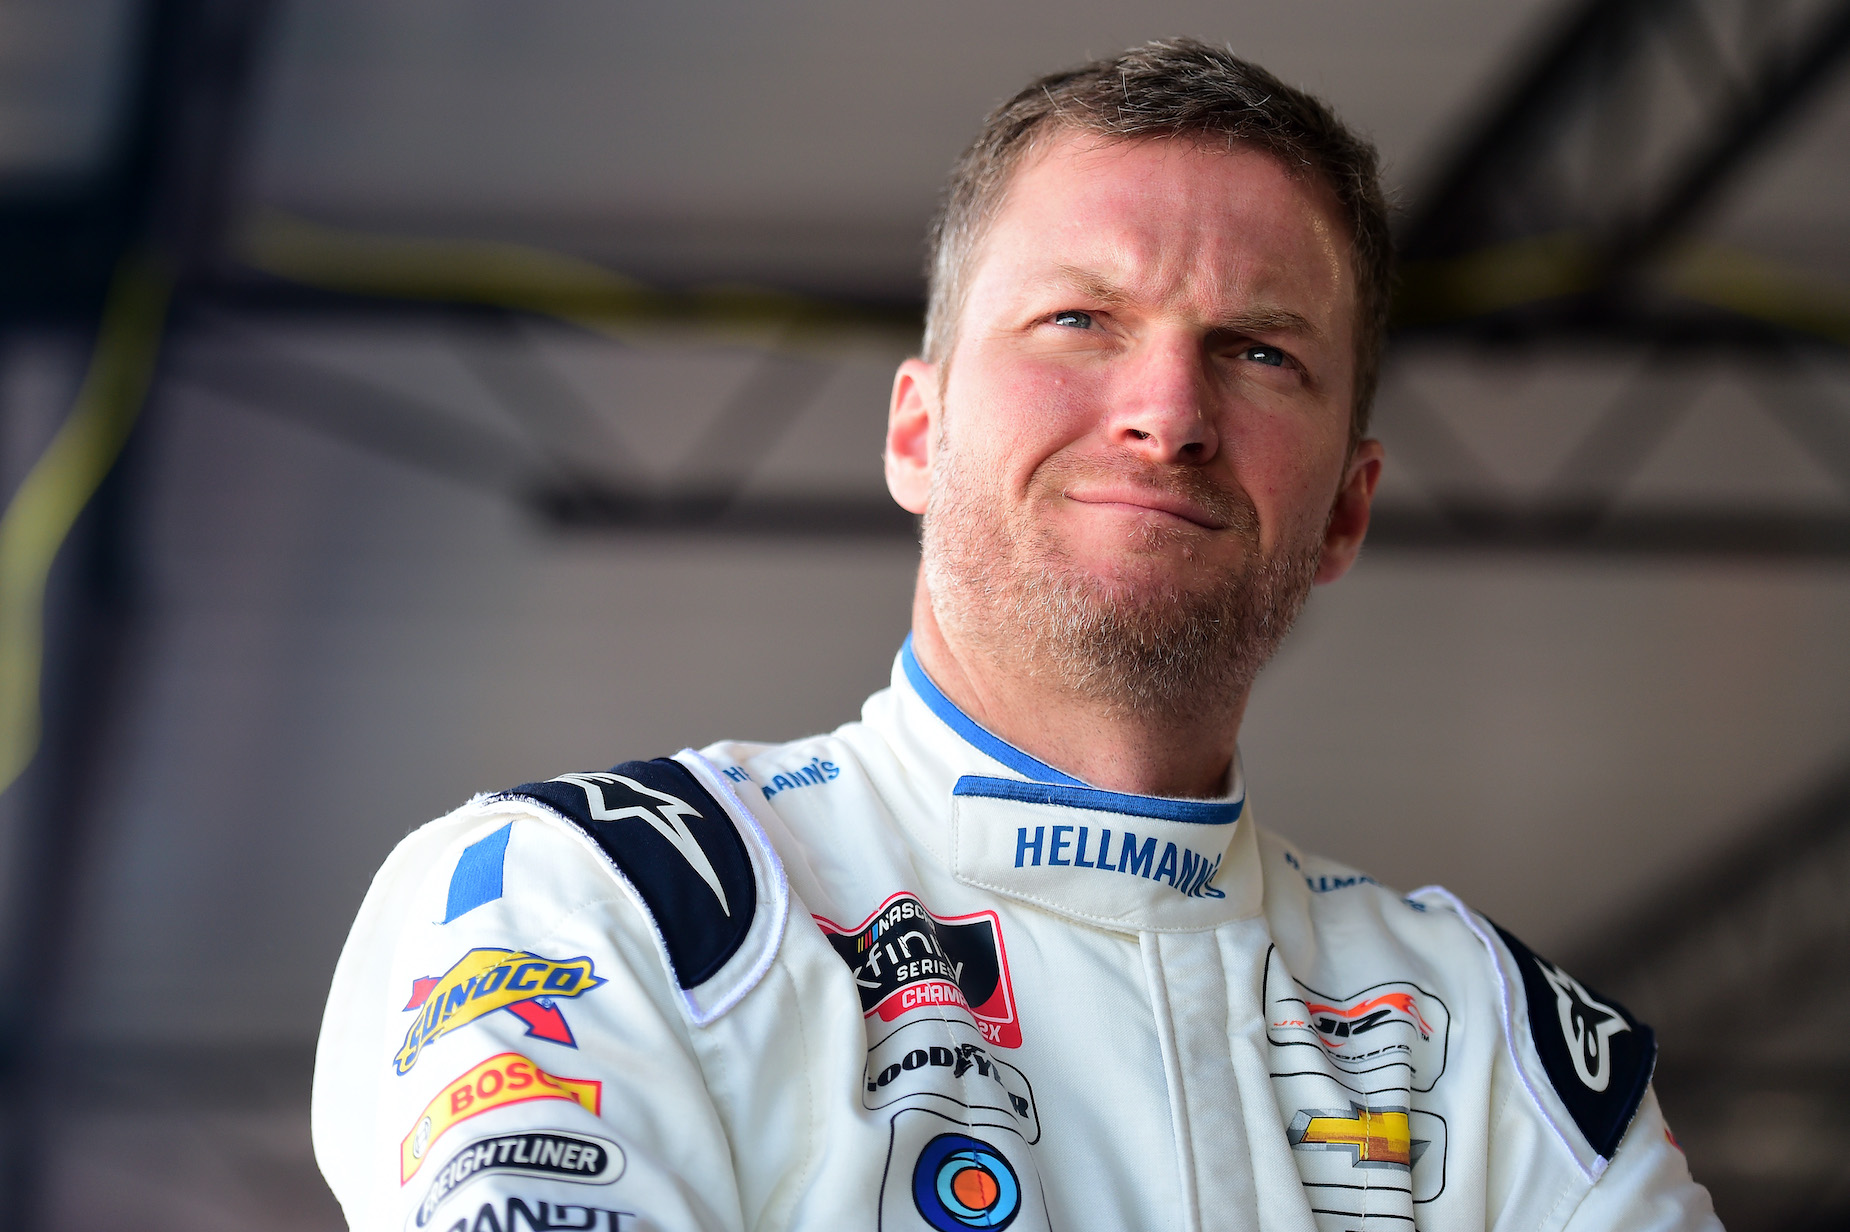 While Dale Earnhardt Jr. made his name in NASCAR, he's also pretty passionate about sandwiches.